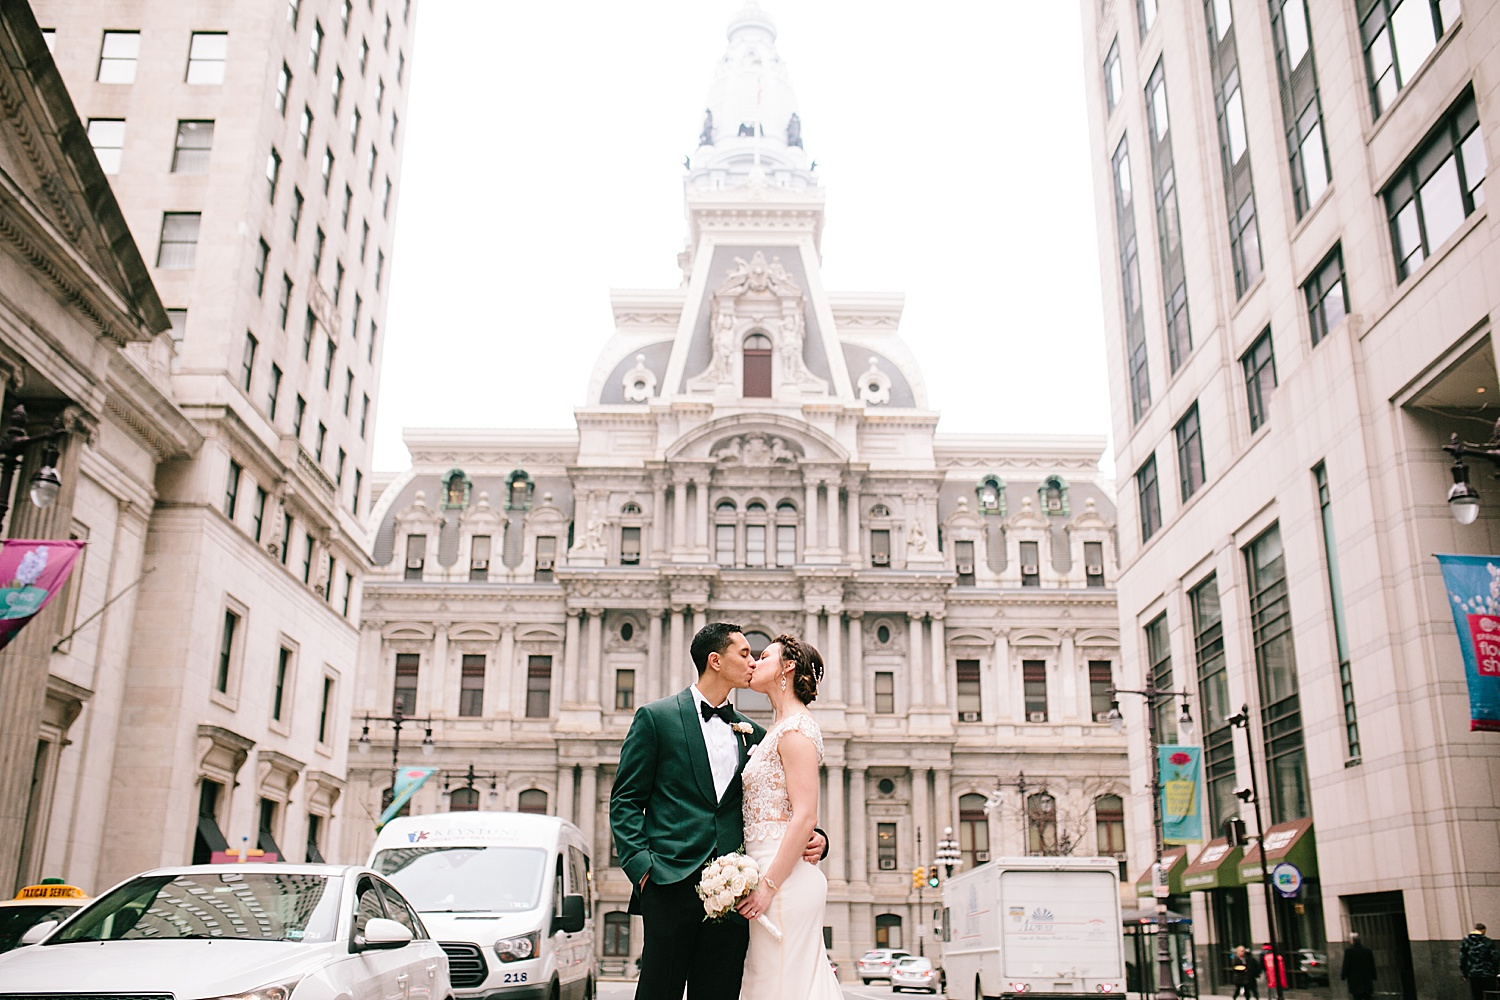 kirstentony_uniontrust_finleycatering_christchurch_philadelphia_wedding_image_0684.jpg